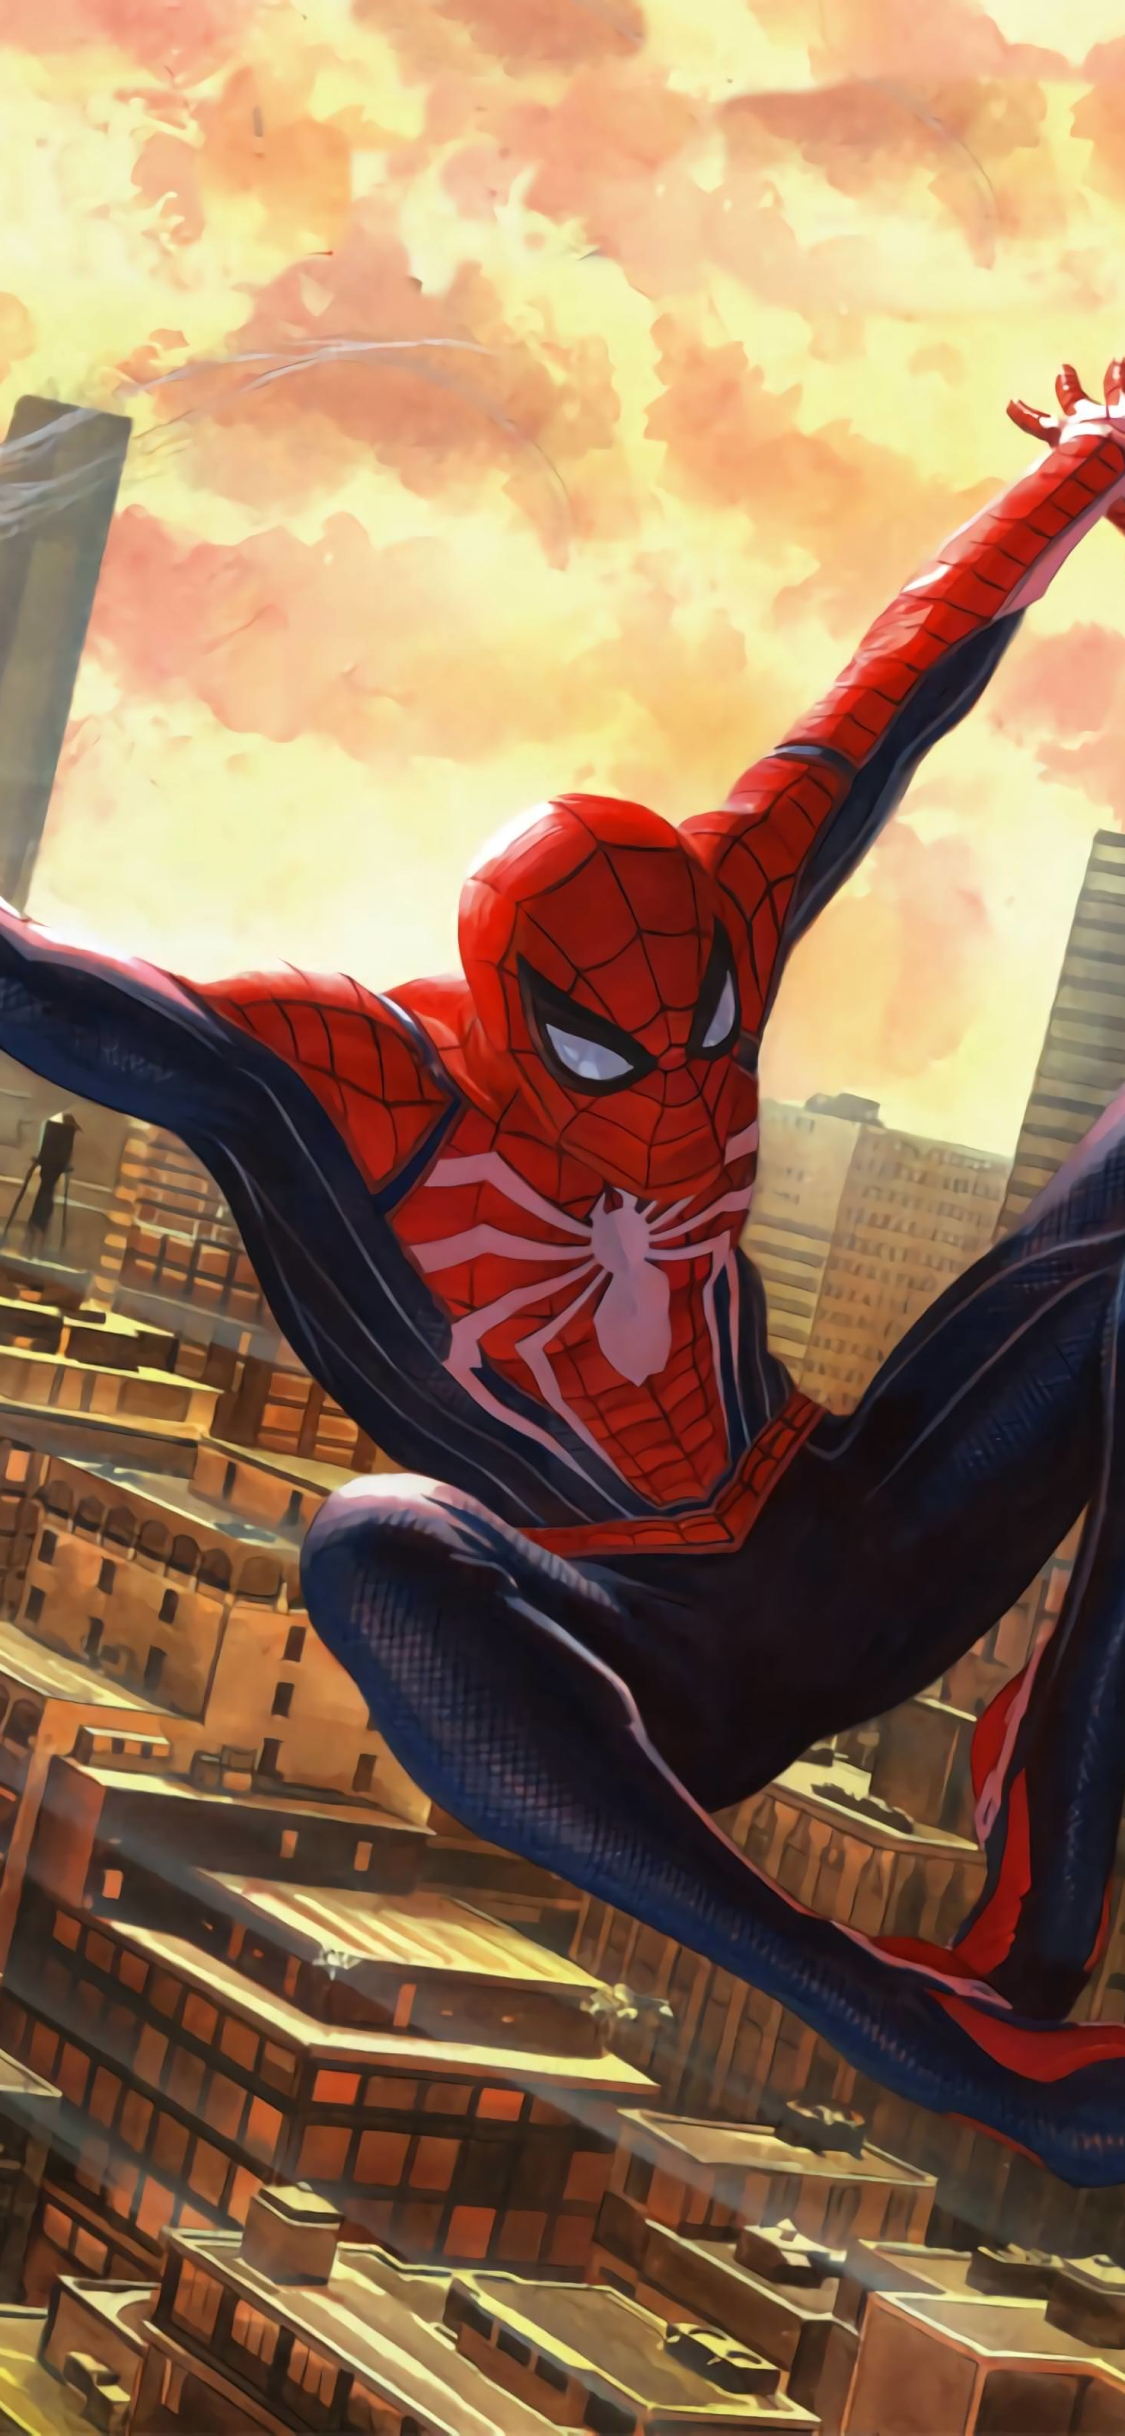 Video Game Spider Man Ps4 1125x2436 Wallpaper Id 824817